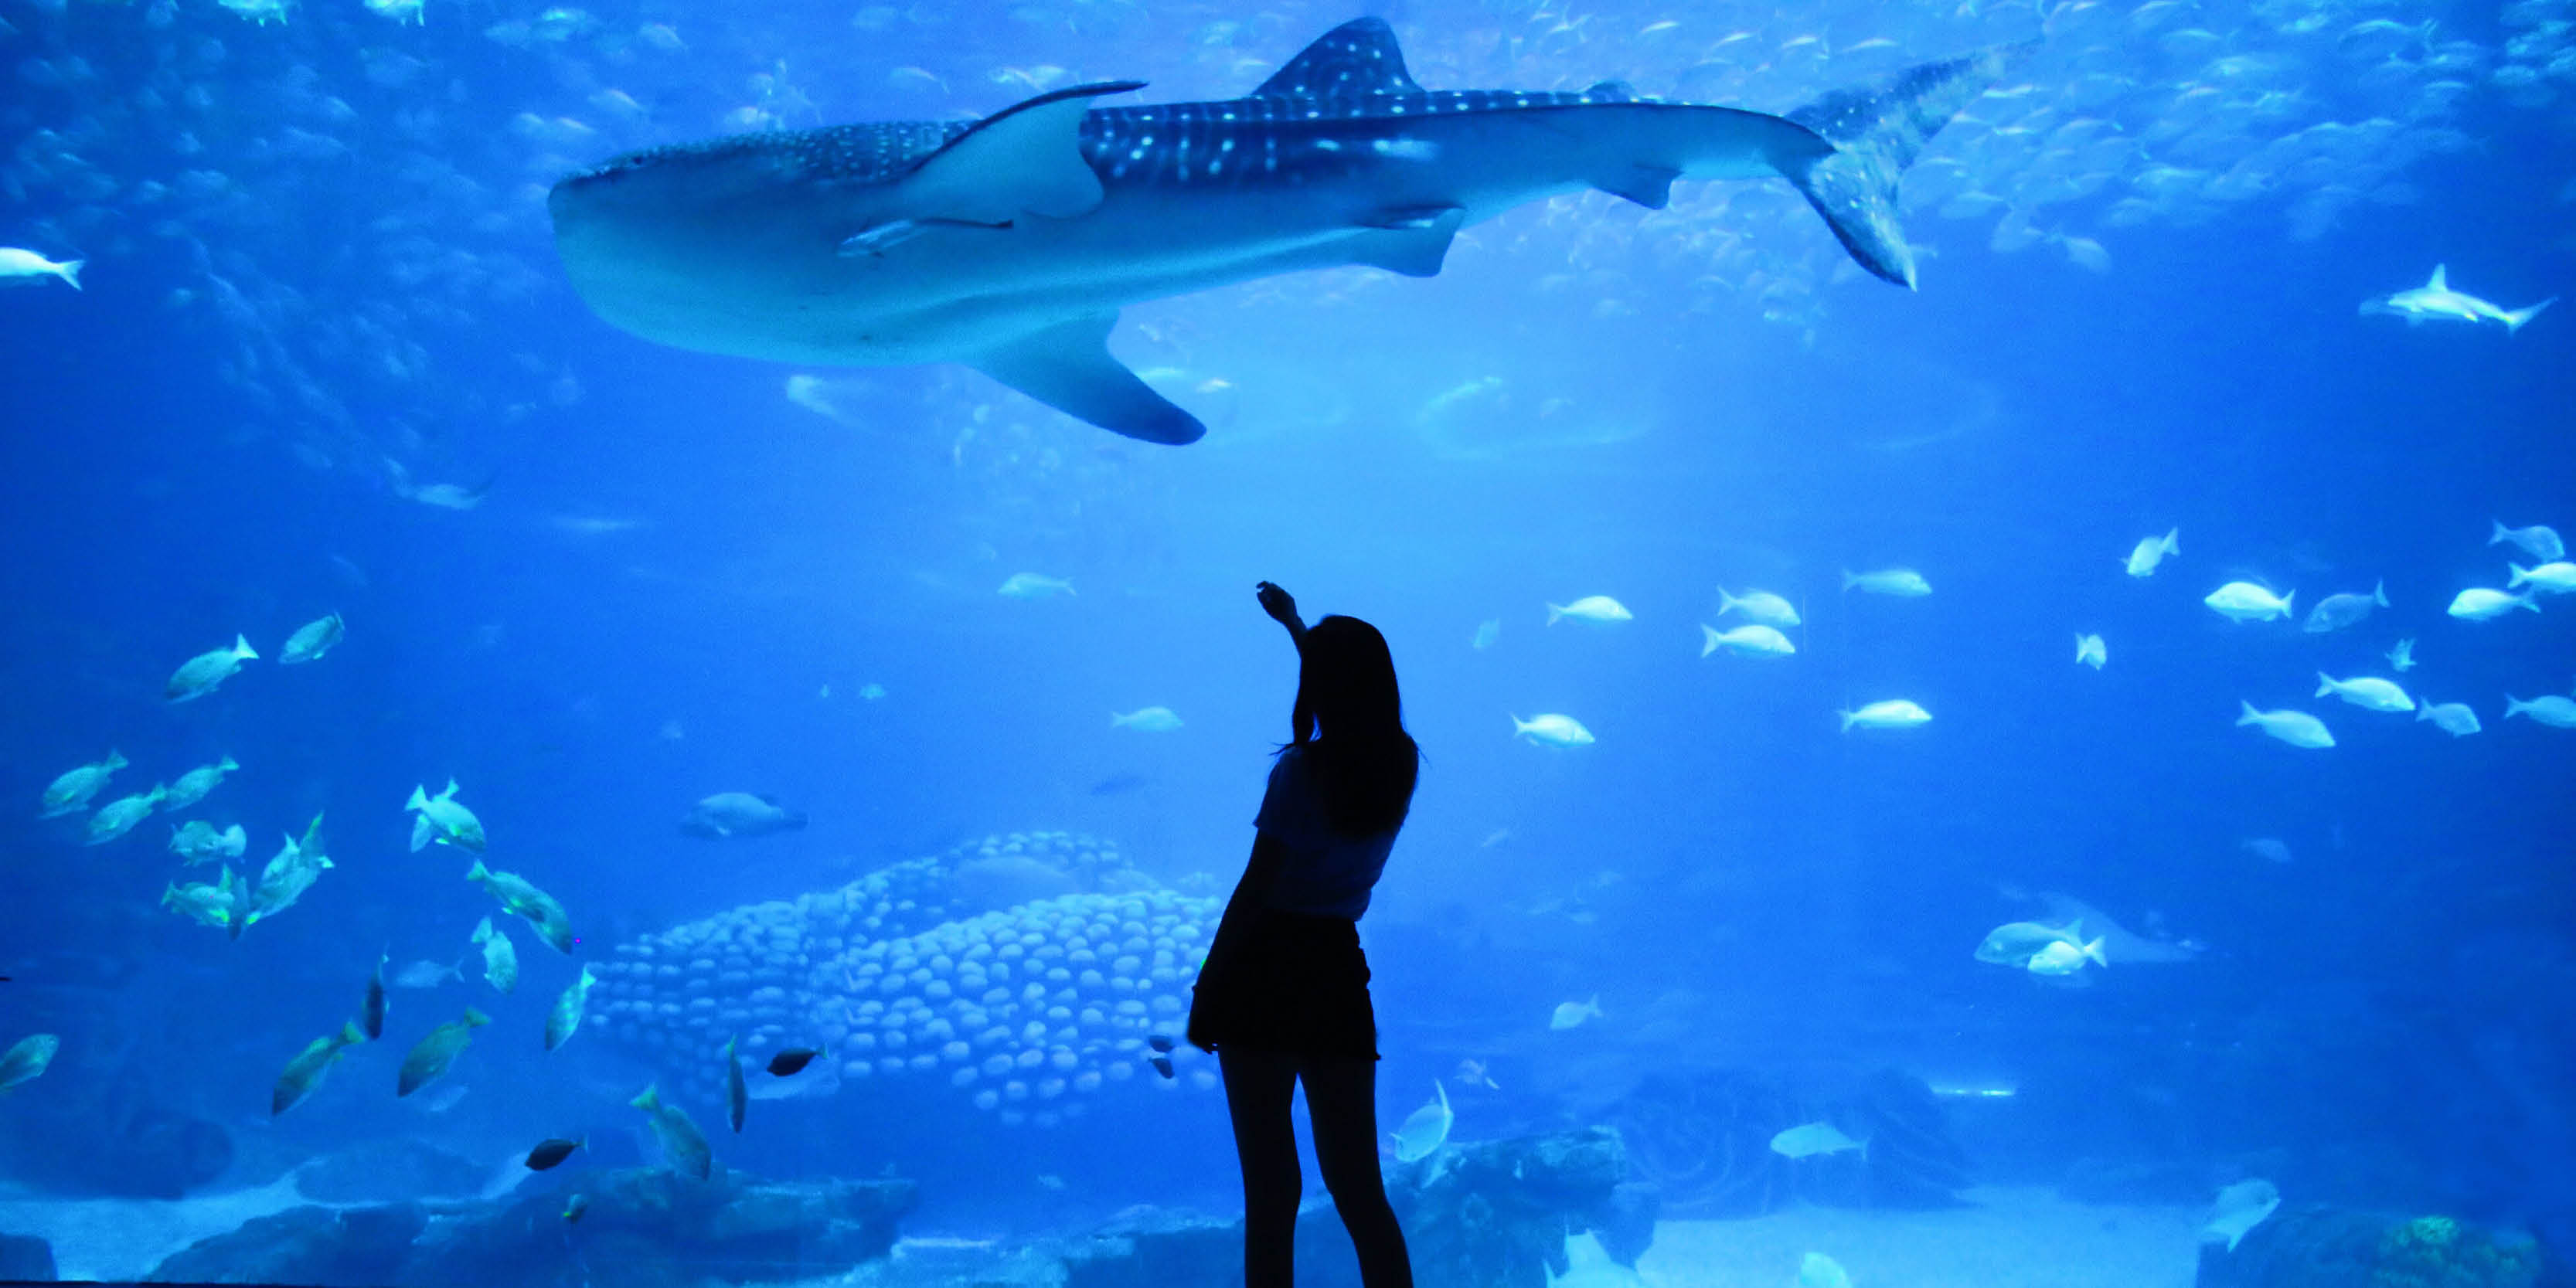 Dubai aquarium - Last-minute holiday Dubai